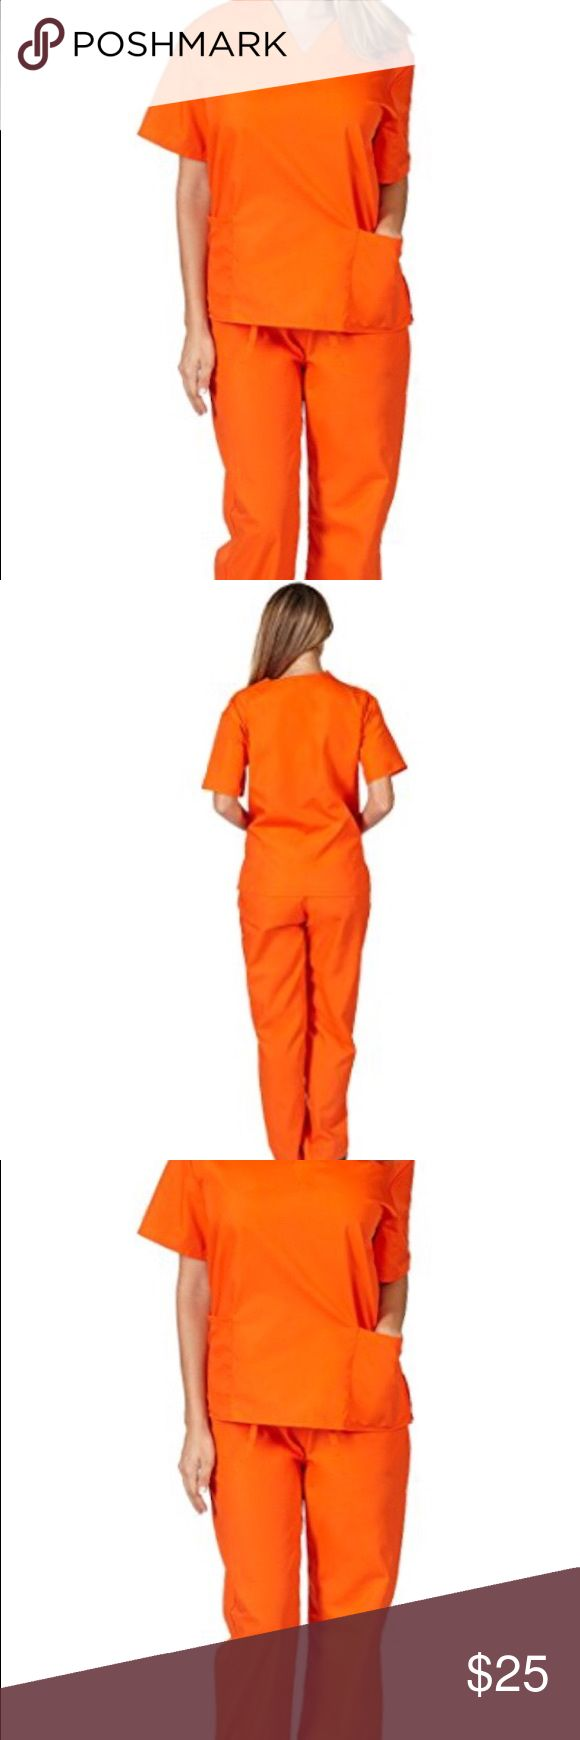 """Orange Scrub Set - women's Like new orange scrub set- (top and bottom). Worn for a few hours for halloween costume. Perfect condition.  Size is XS however they run very big, so if you are normally small or medium in clothing this will probably fit you. Elastic waist on pants.  I am 5'4"""" thin build and these fit me perfectly. Pants"""